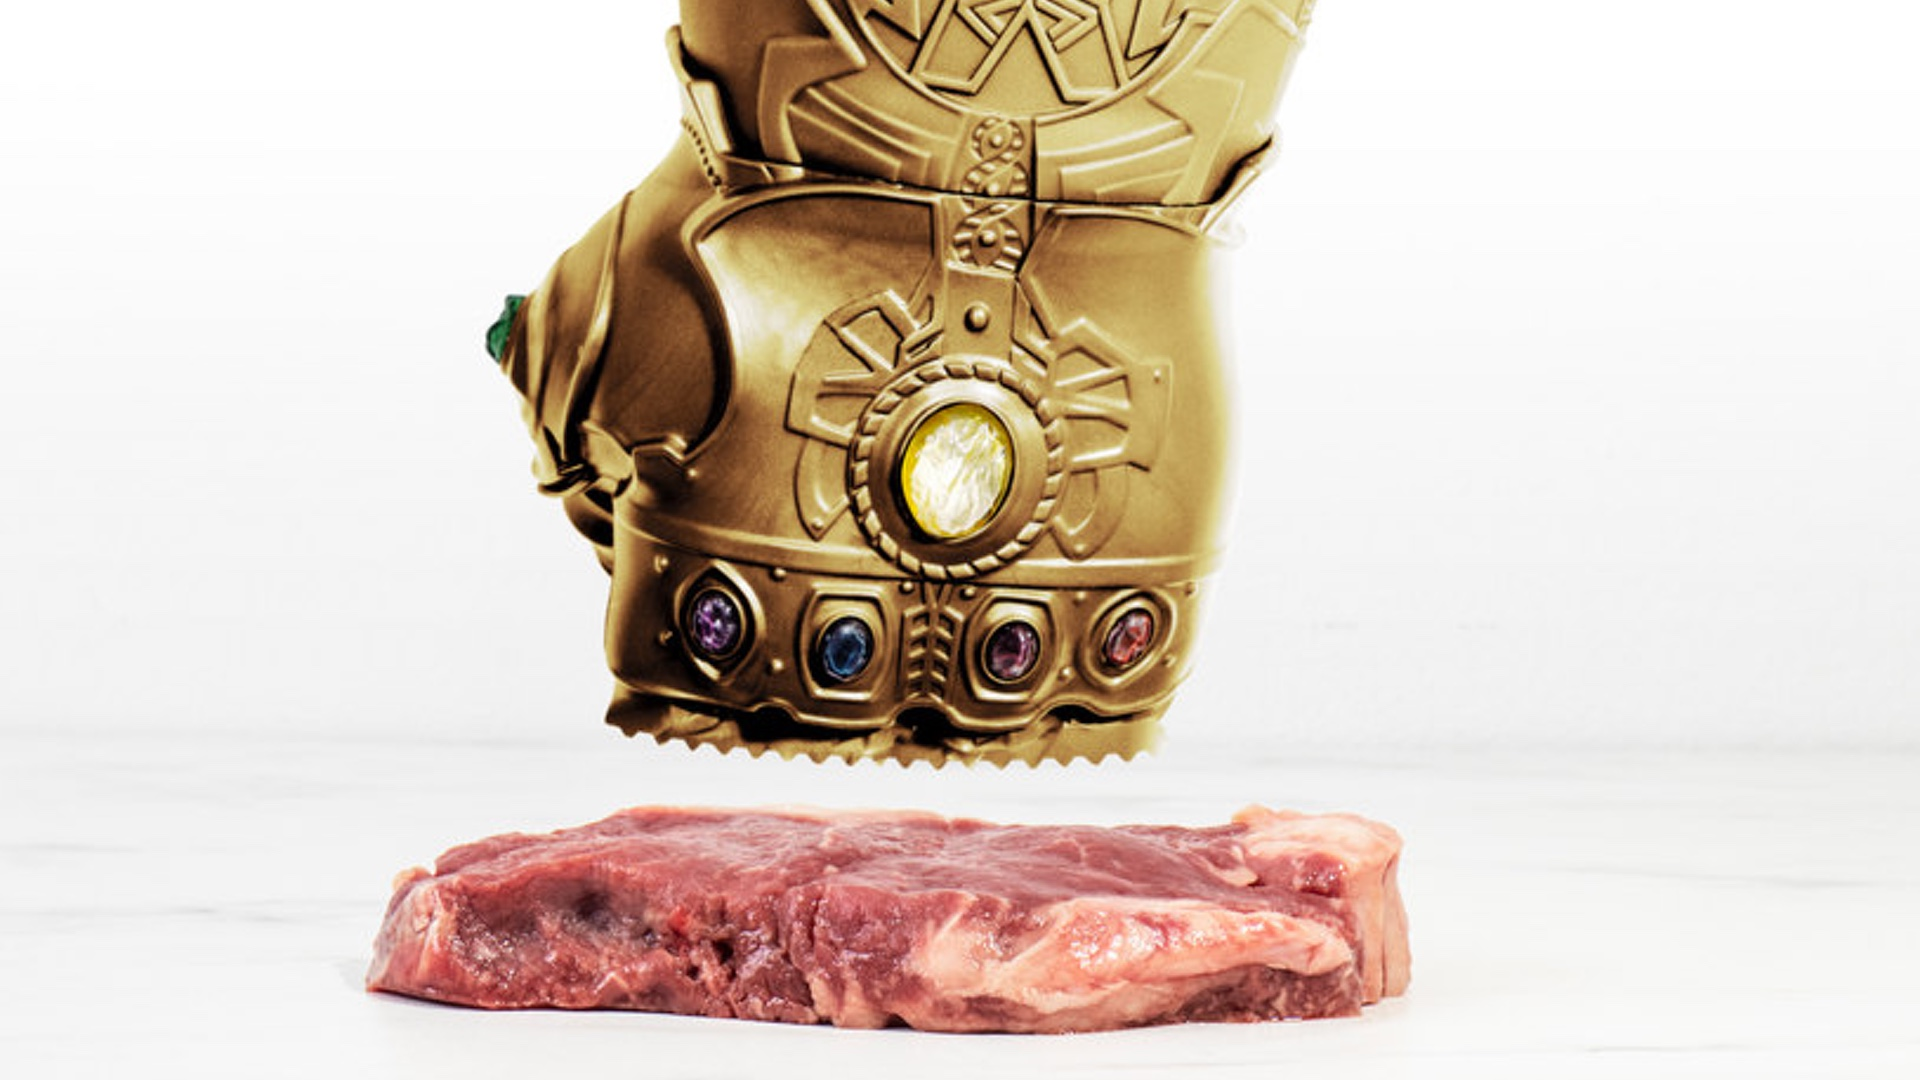 obliterate-your-steak-with-this-infinity-gauntlet-meat-tenderizer-social.jpg